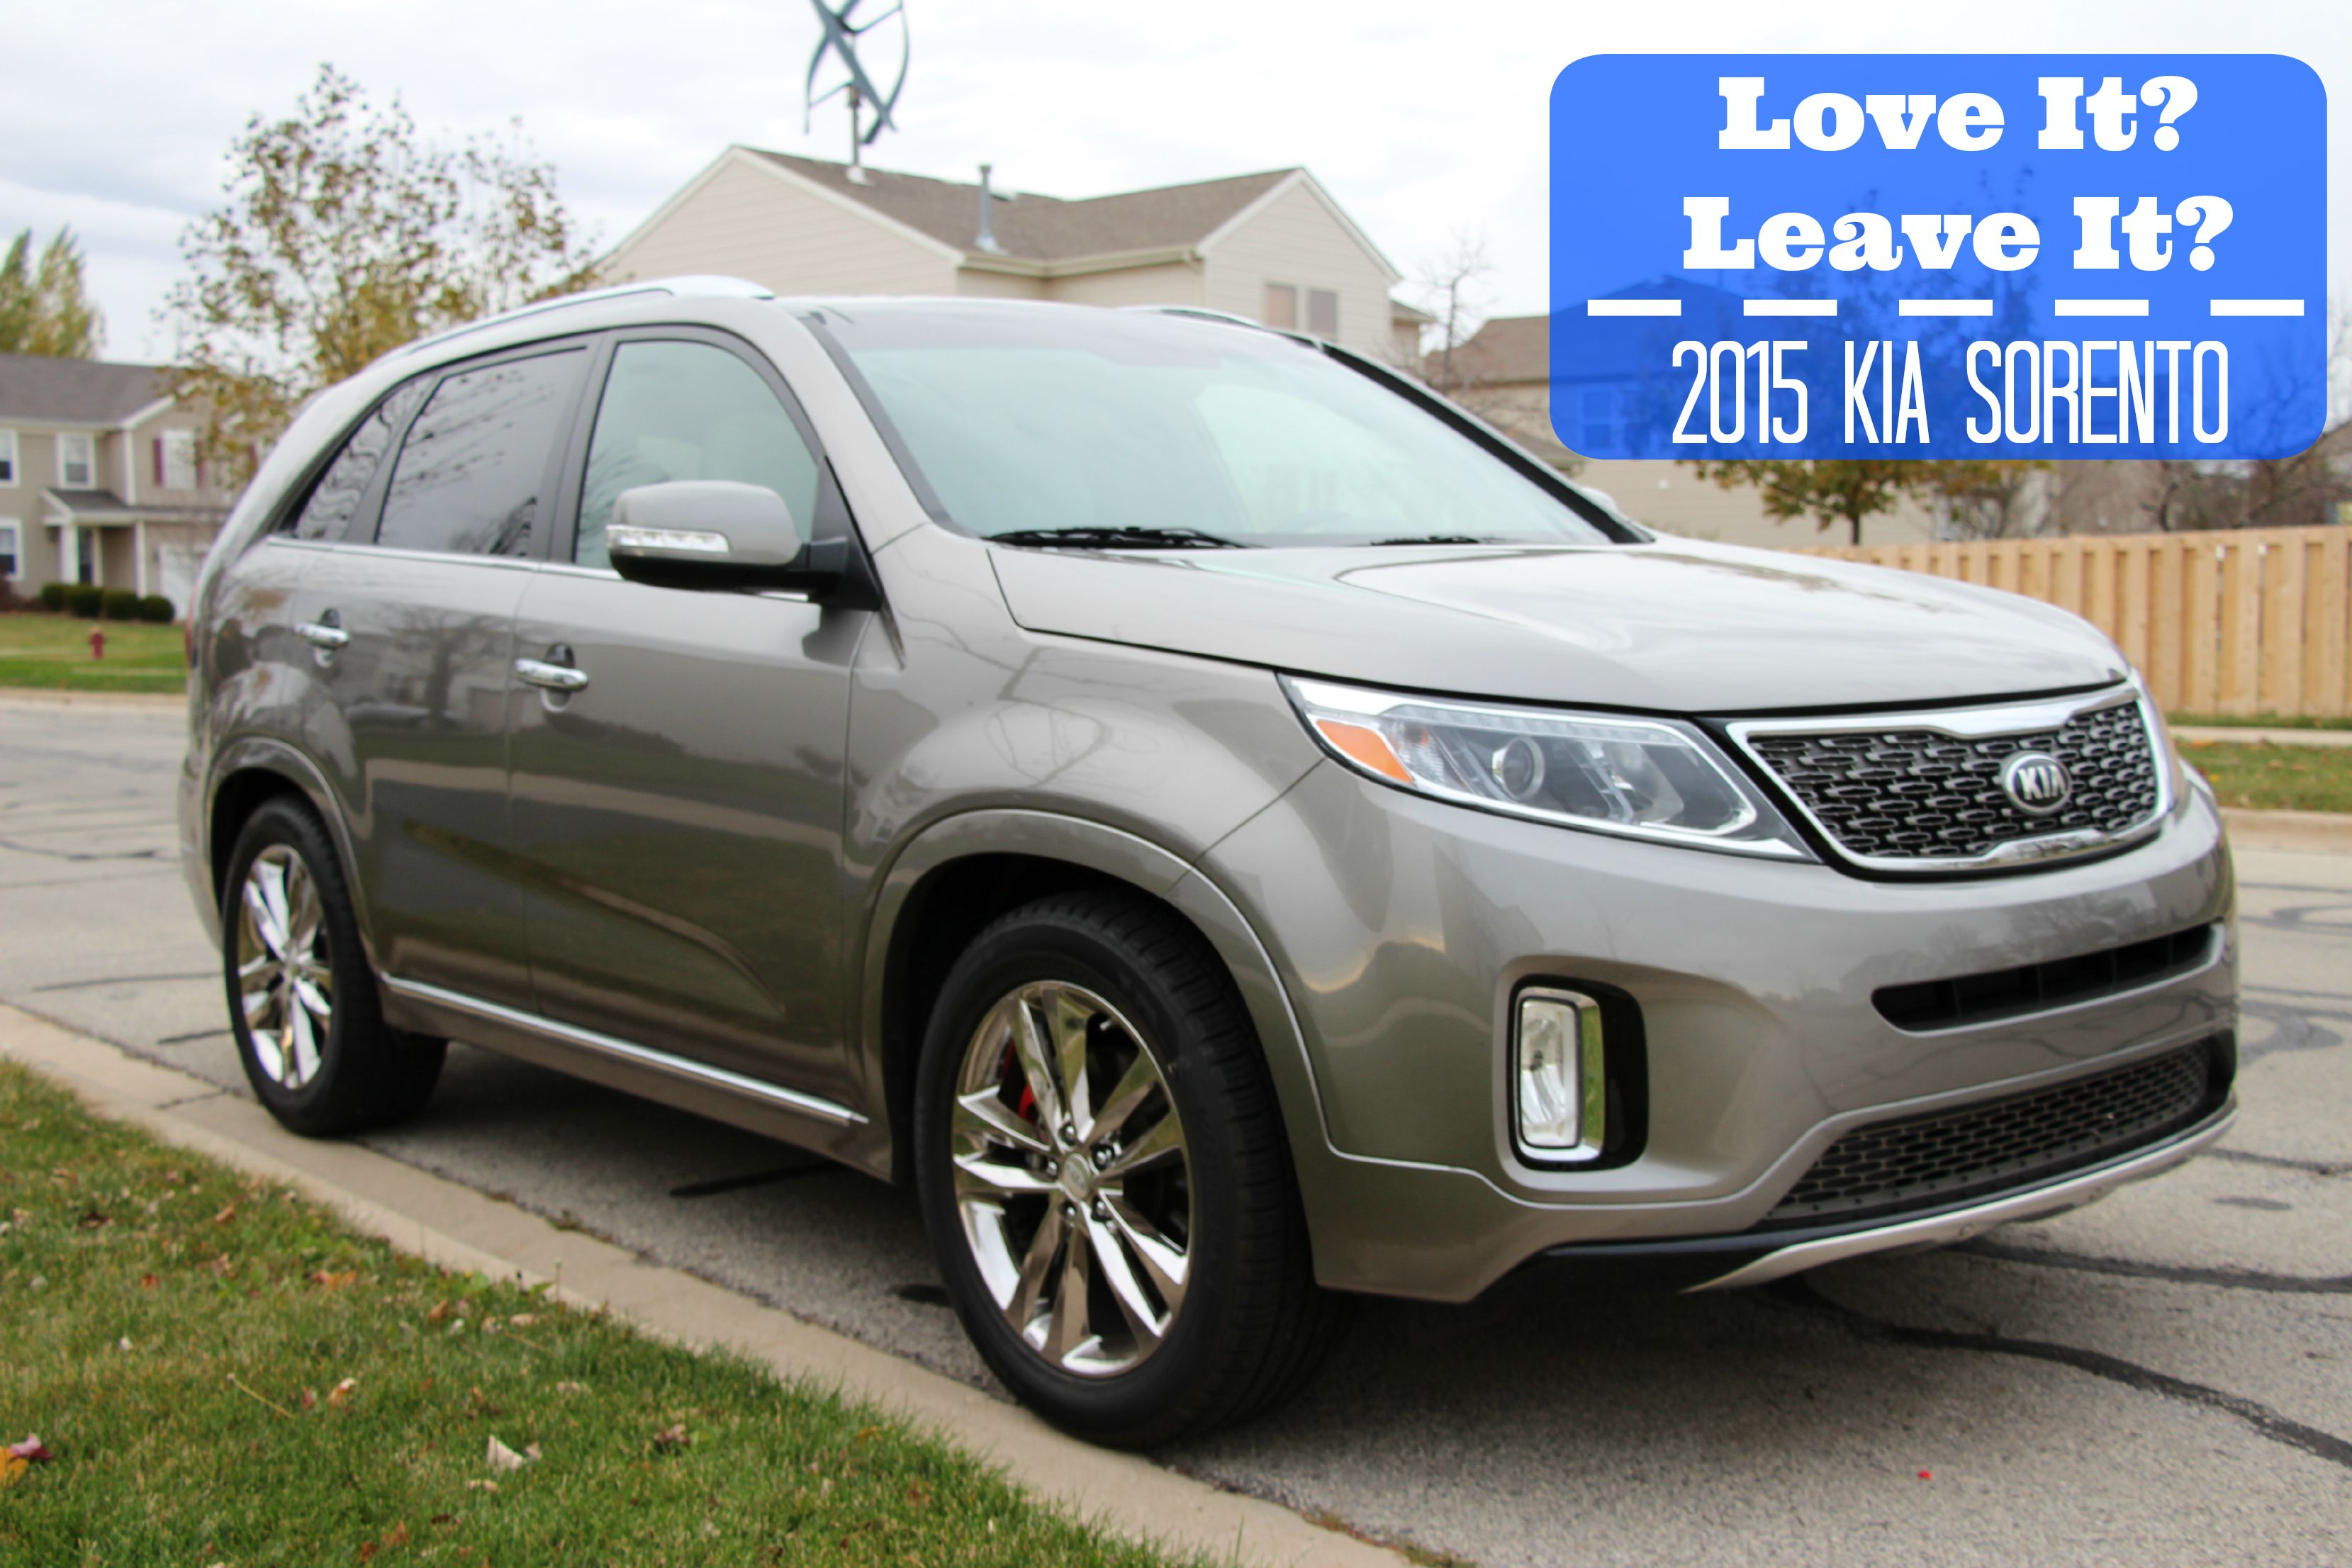 in of sale for htm suv vehicles featured kia lansdale sx owned sorento pre pa